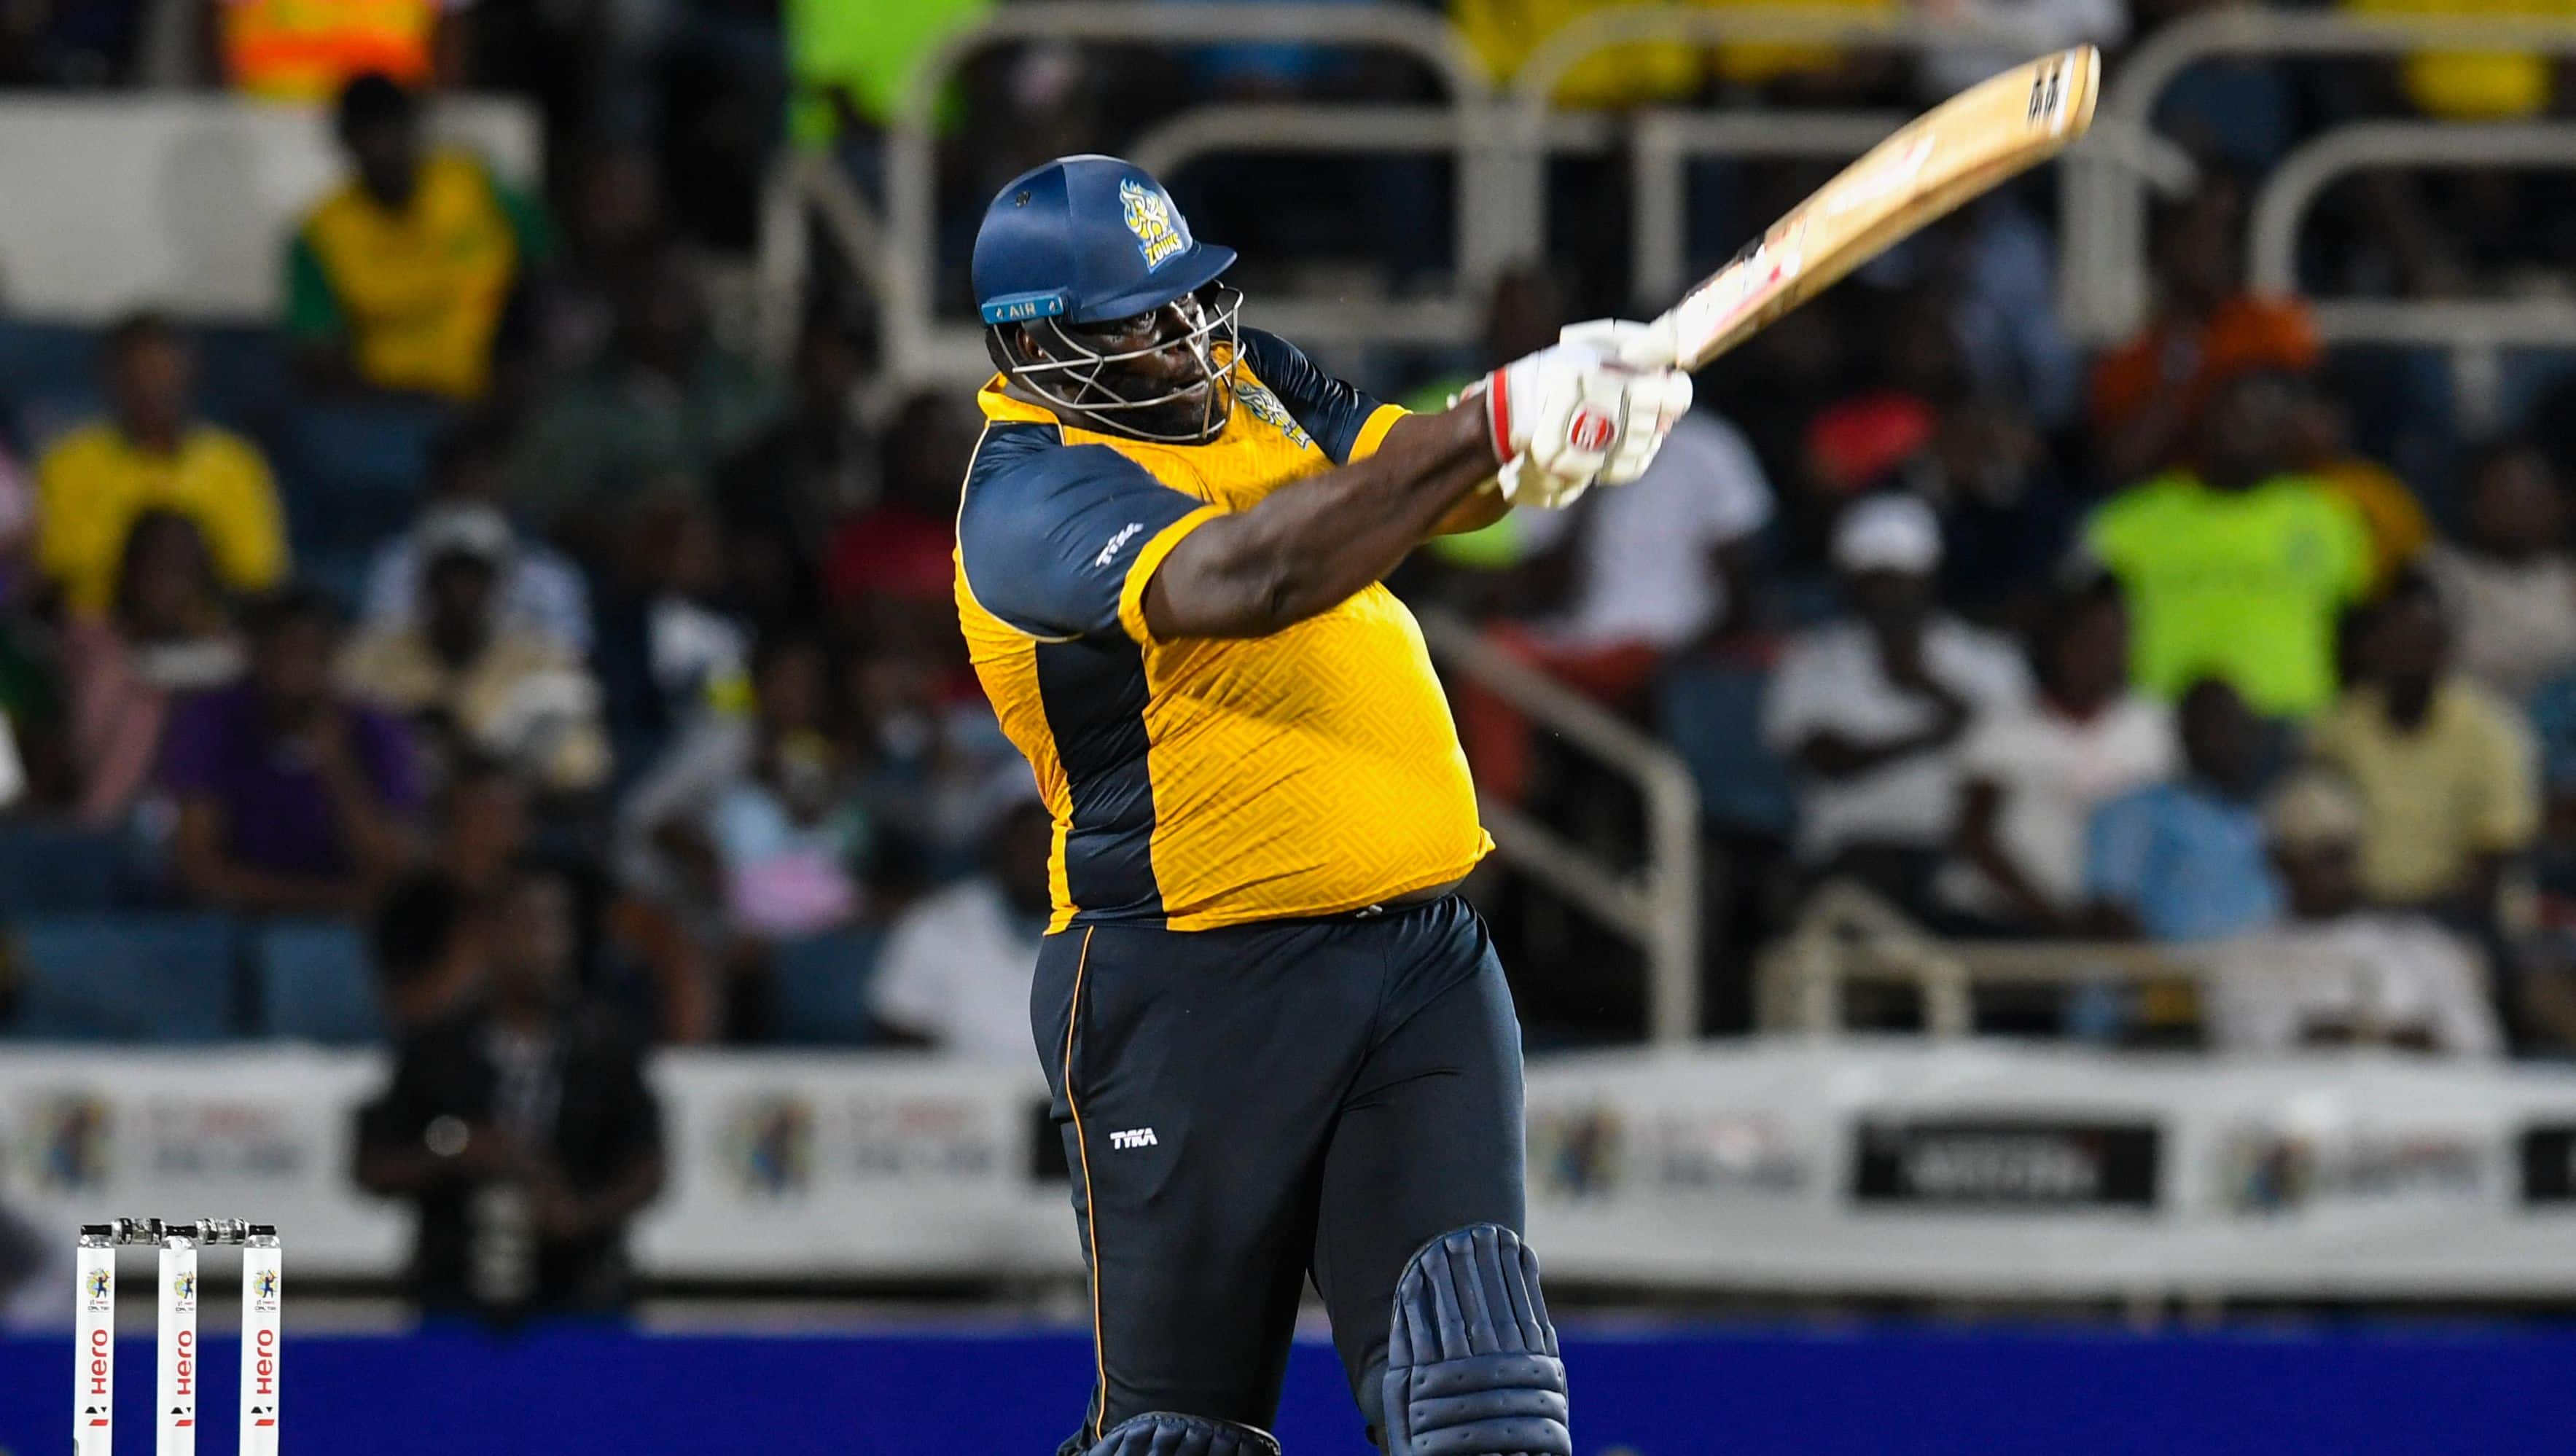 CPL 2019: St Lucia Zouks secure first win after Andre Russell injury scare